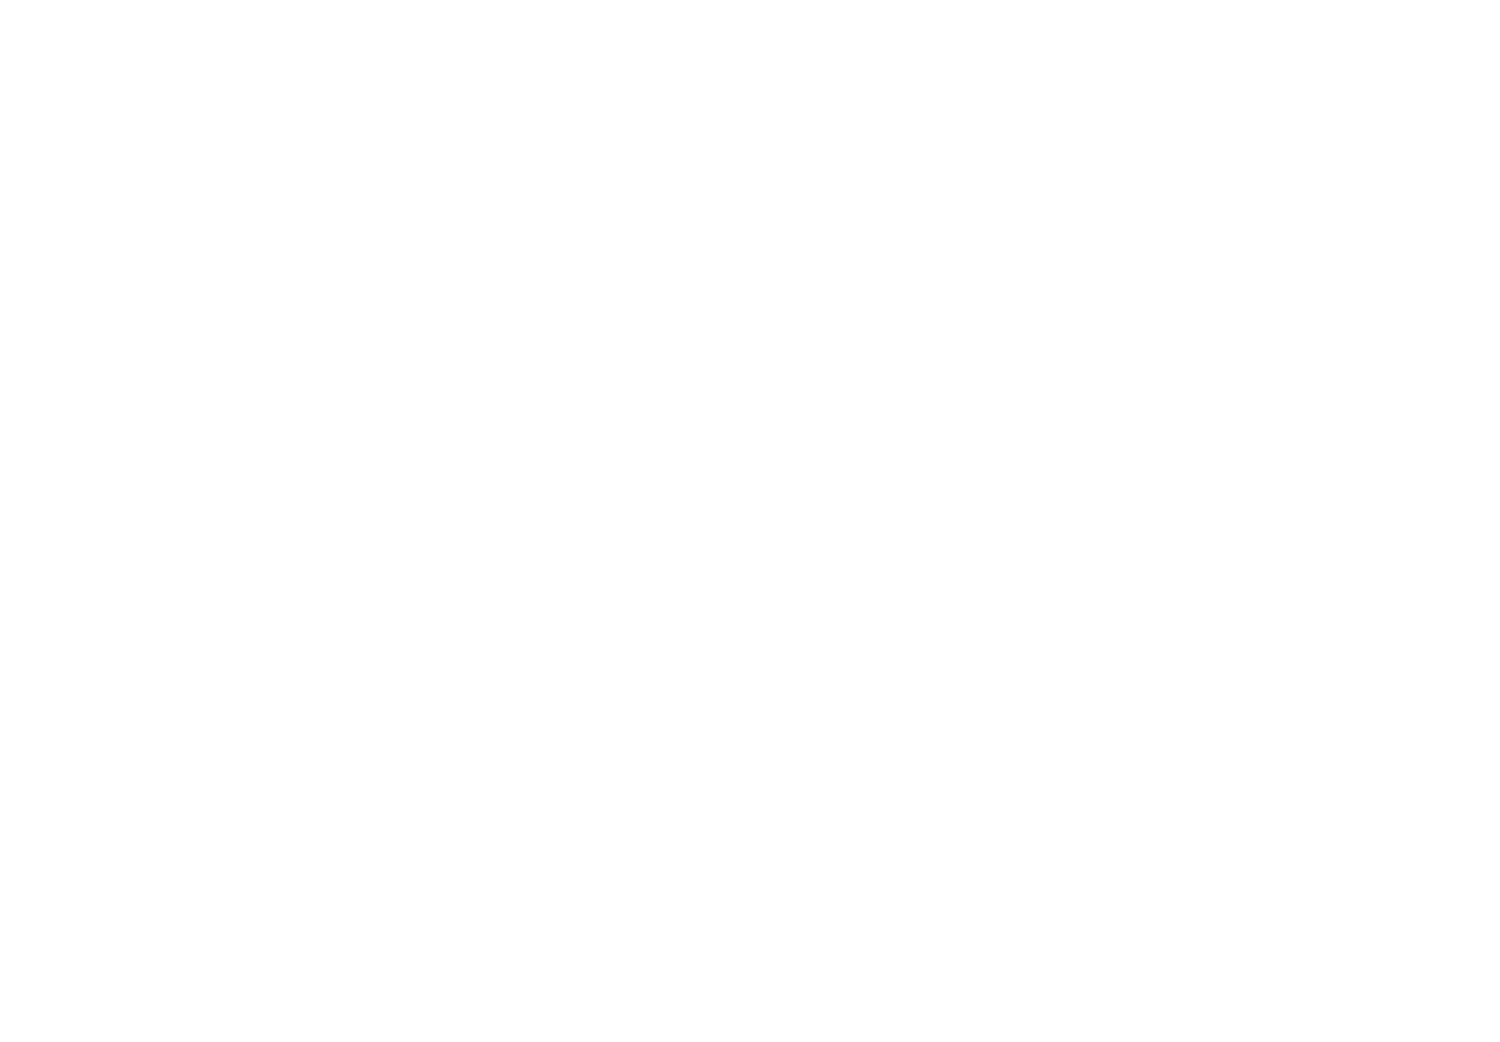 ValleyArts NJ